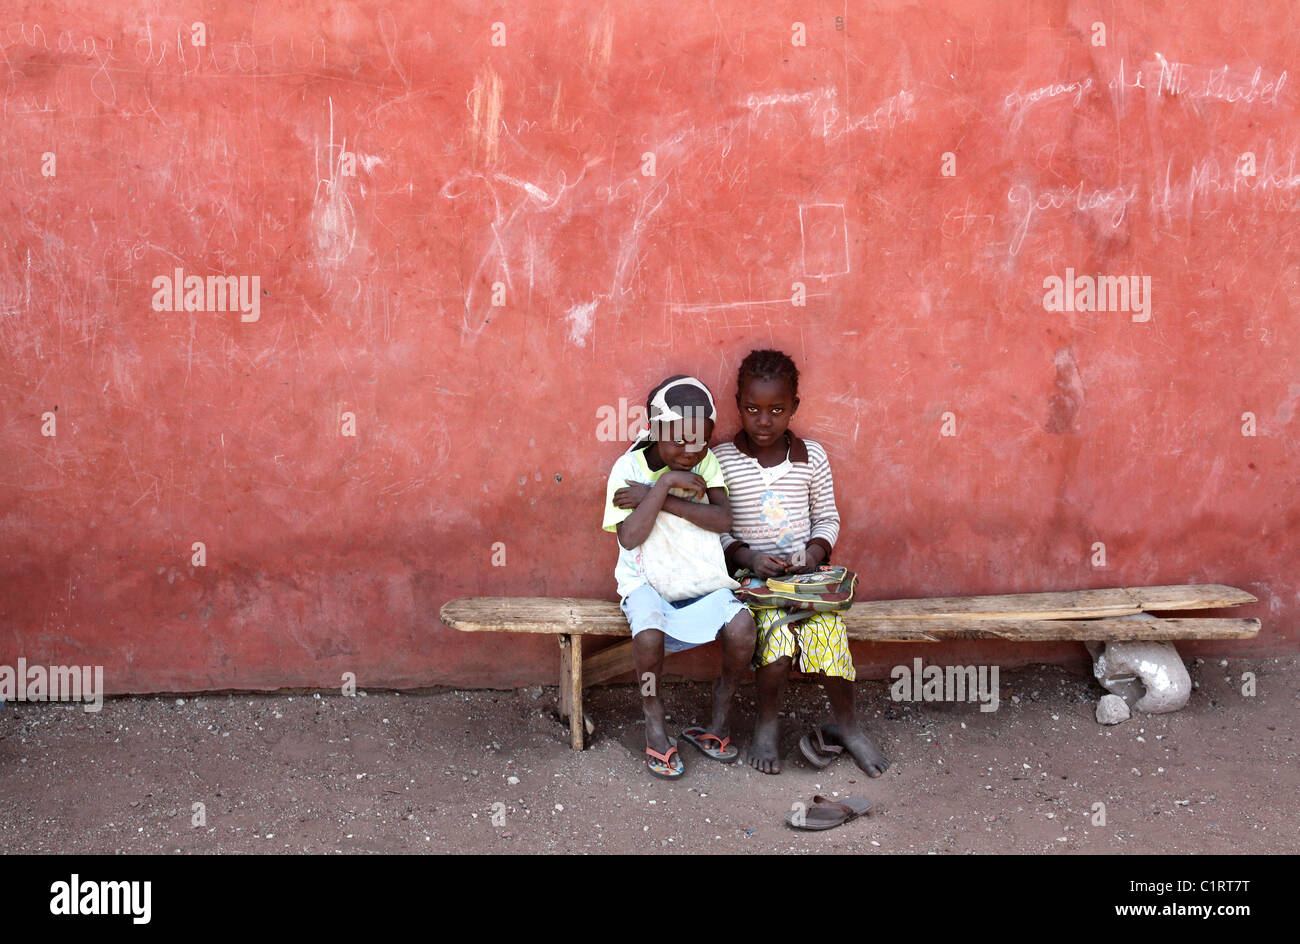 two shy girls sitting on a wooden bench, Senegal, Afrika - Stock Image